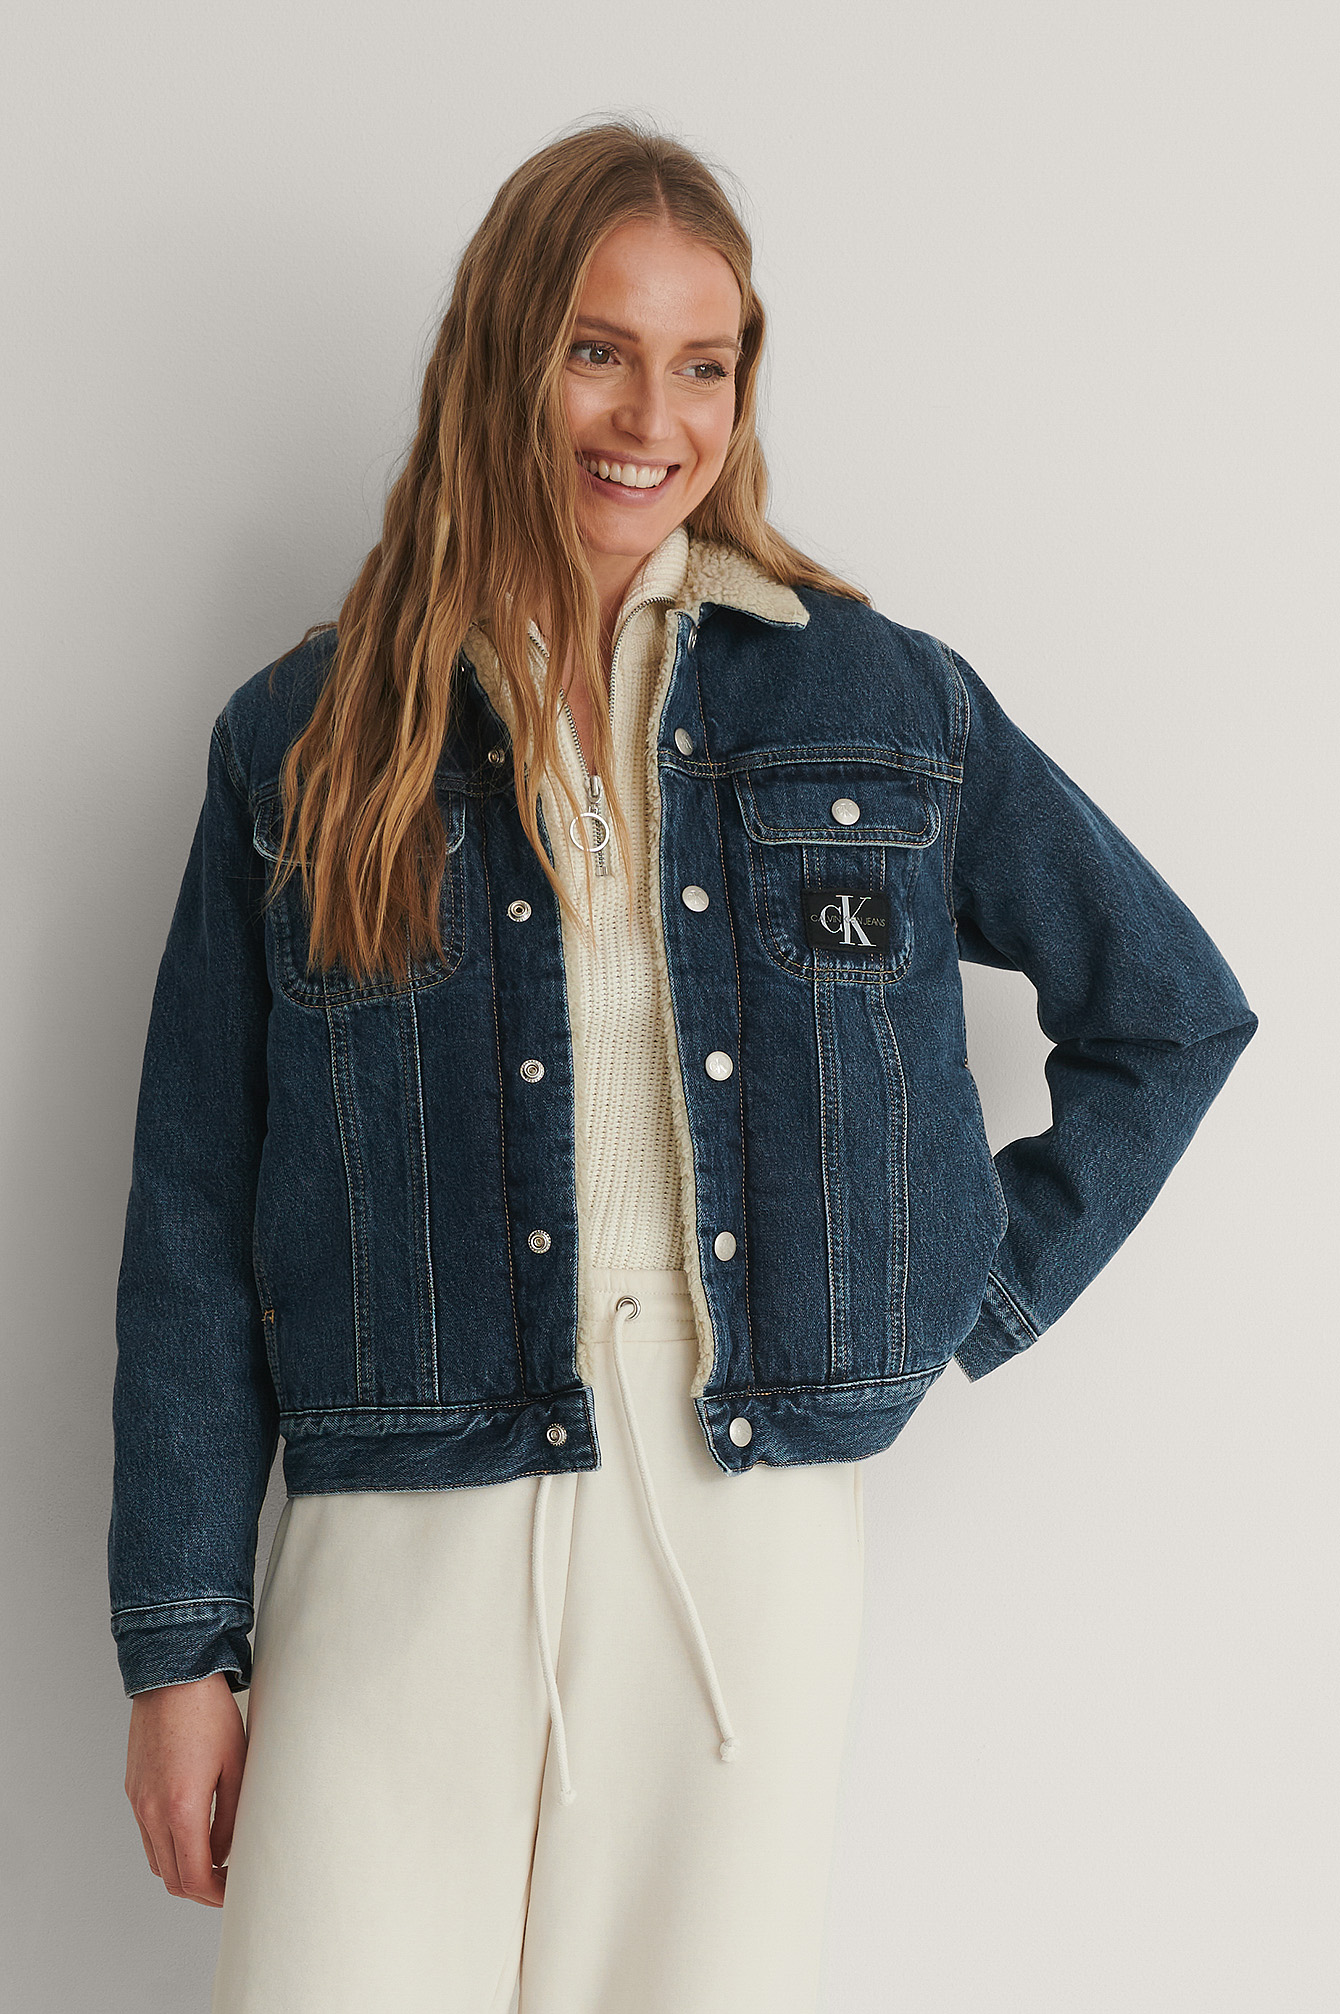 Sherpa 90s Denim Jacket Outfit.